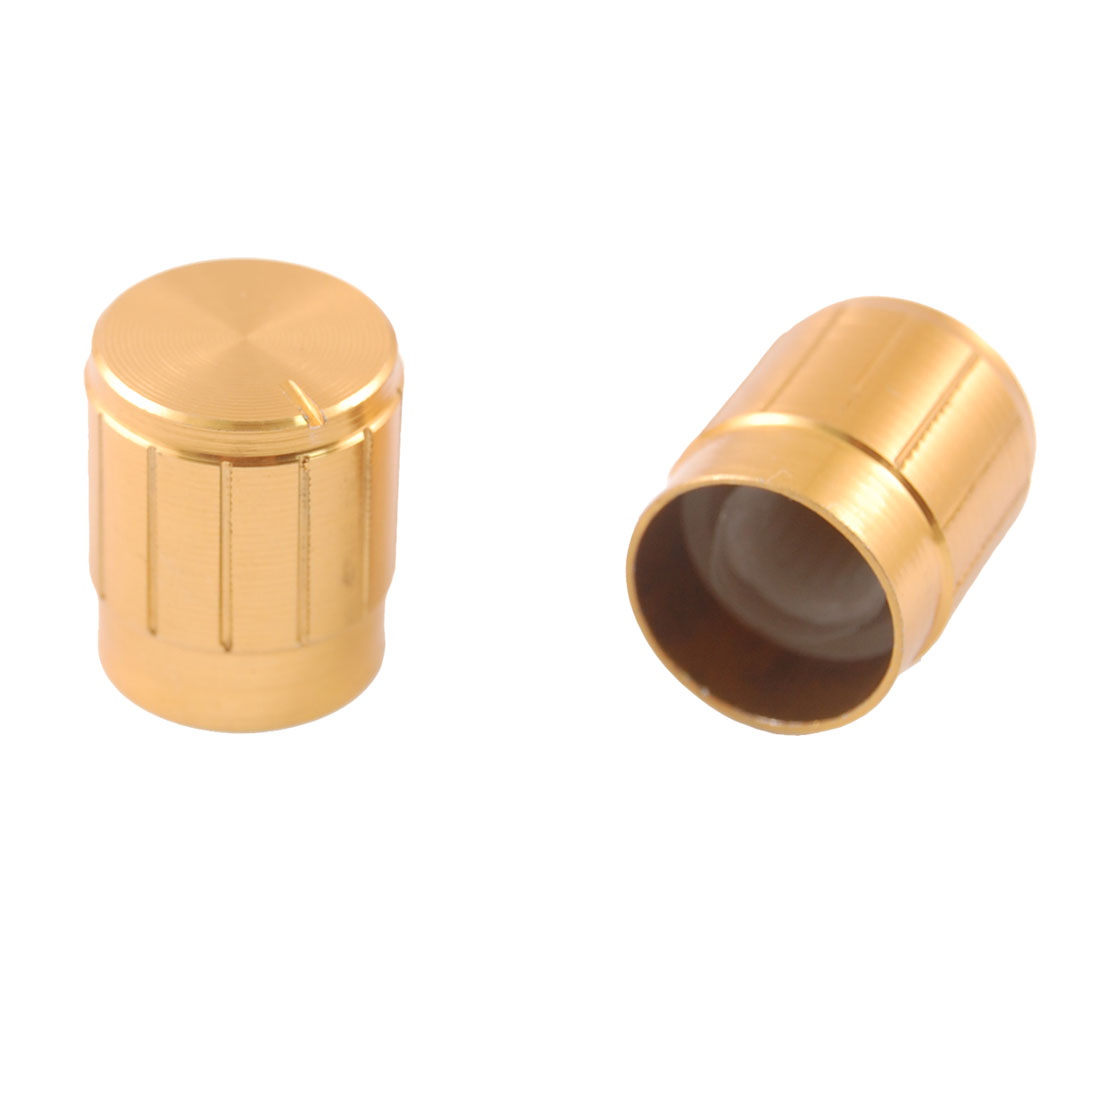 15mm x 17mm Gold Tone Aluminum Potentiometer Knobs 5 Pcs